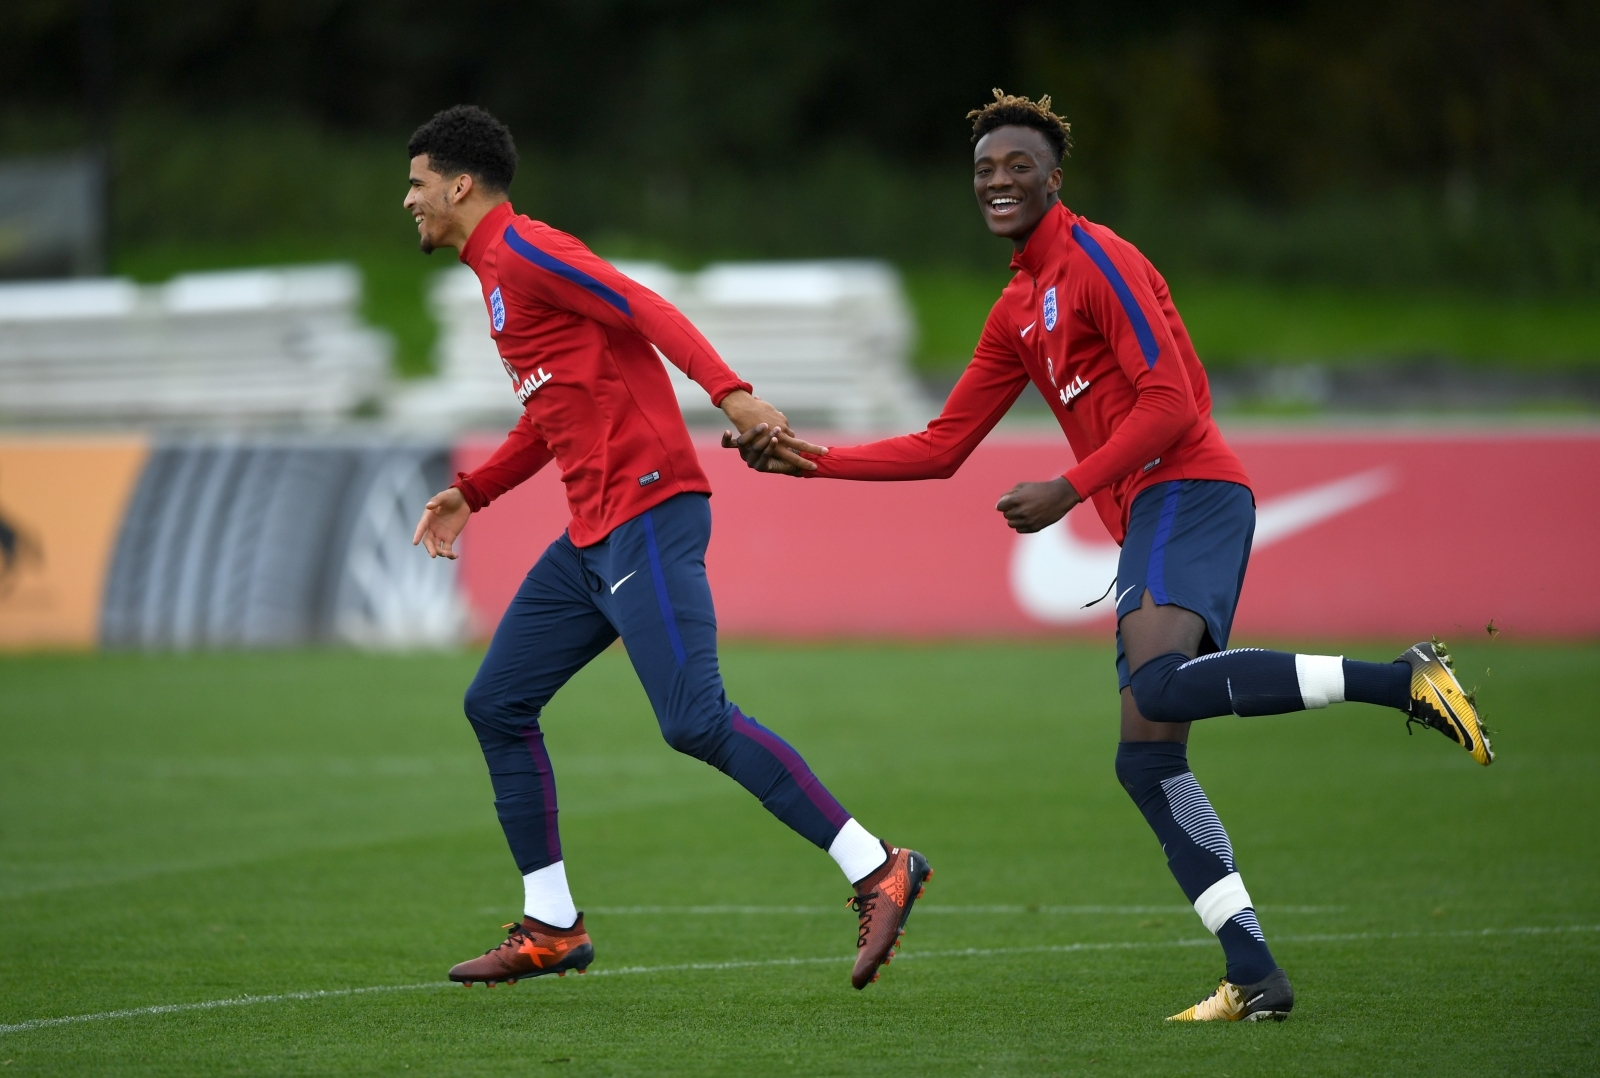 Dominic Solanke and Tammy Abraham